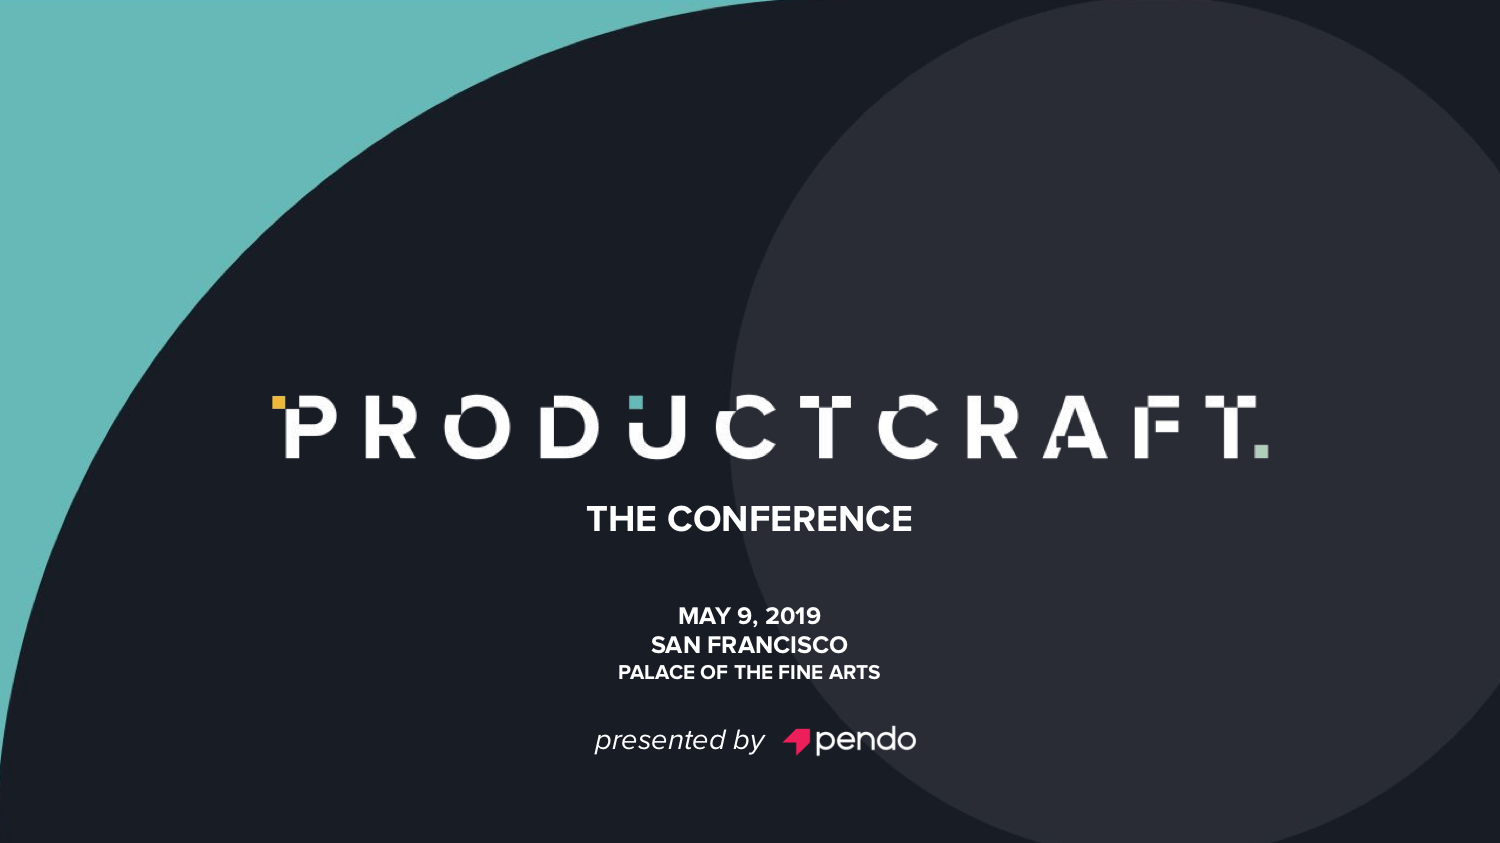 Hang out with productboard at ProductCraft!